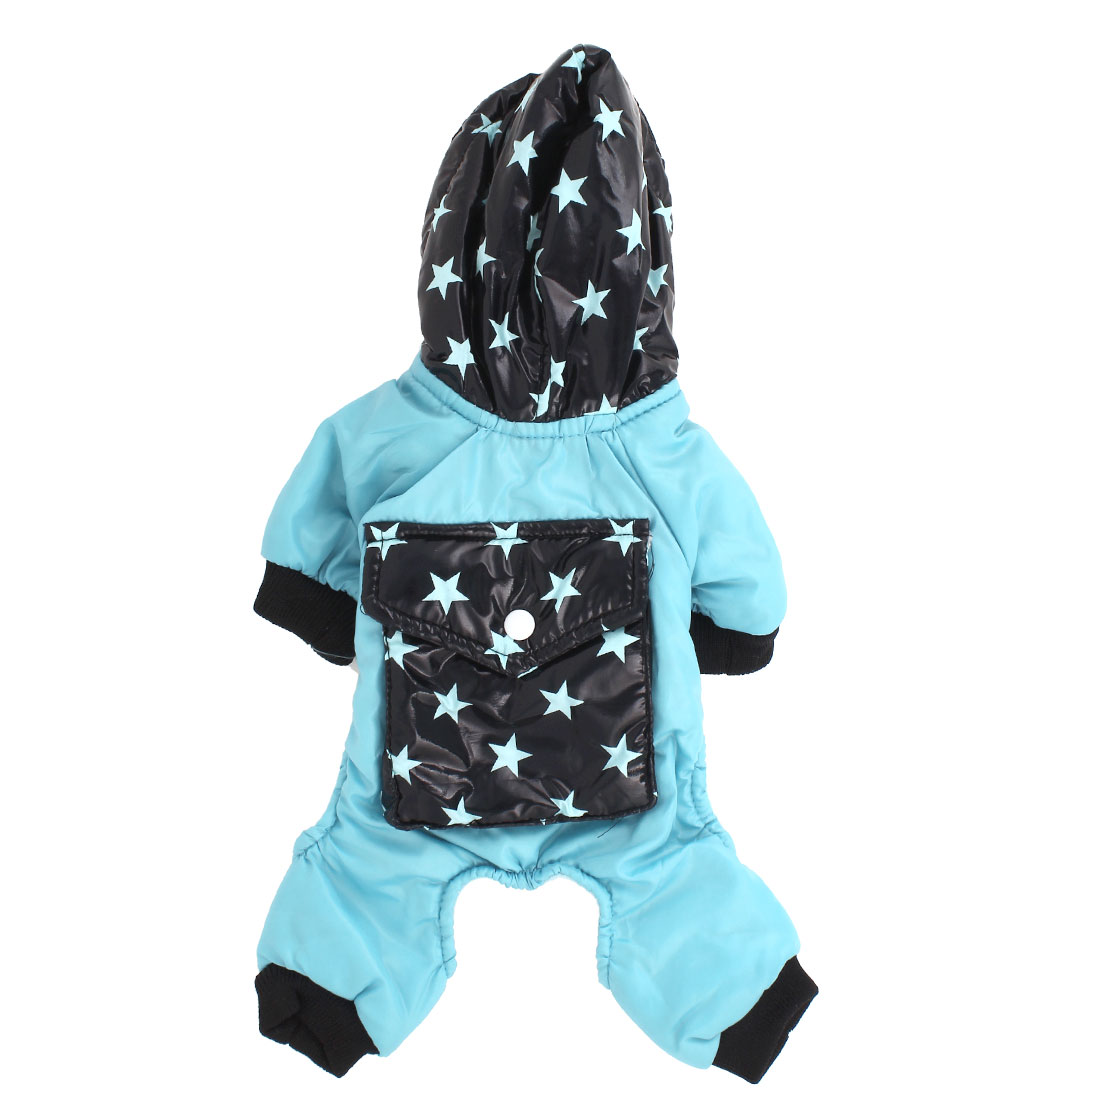 Pet Dog Doggy Pentagram Print Hoodie Apparel Clothes Coat Light Blue Black Size XXS